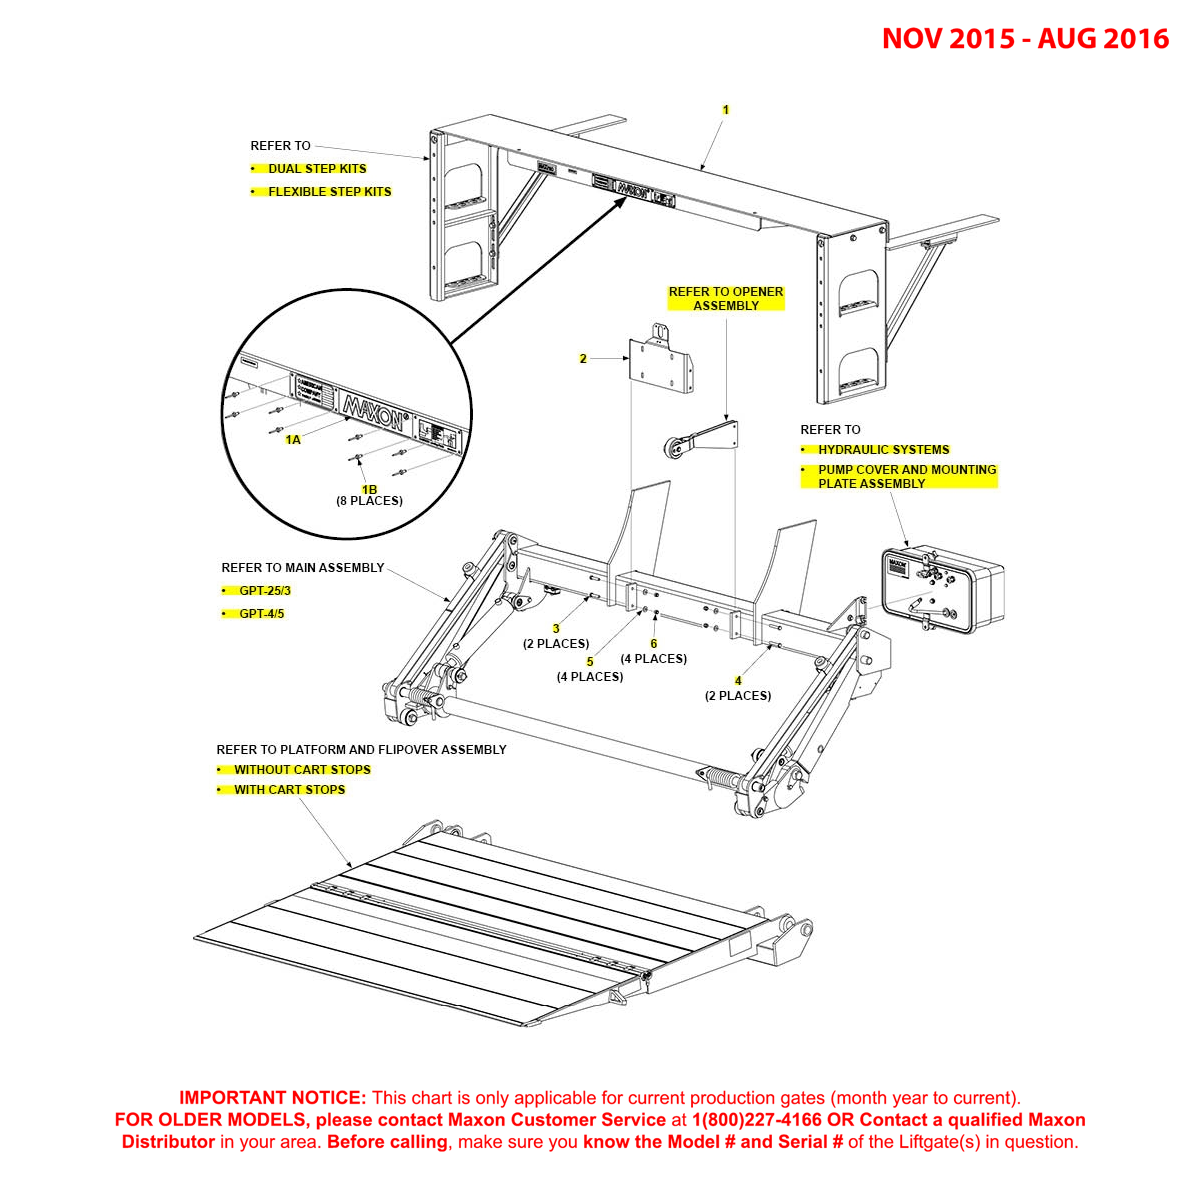 GPT (Nov 2015 - Aug 2016) Final Assembly Diagram